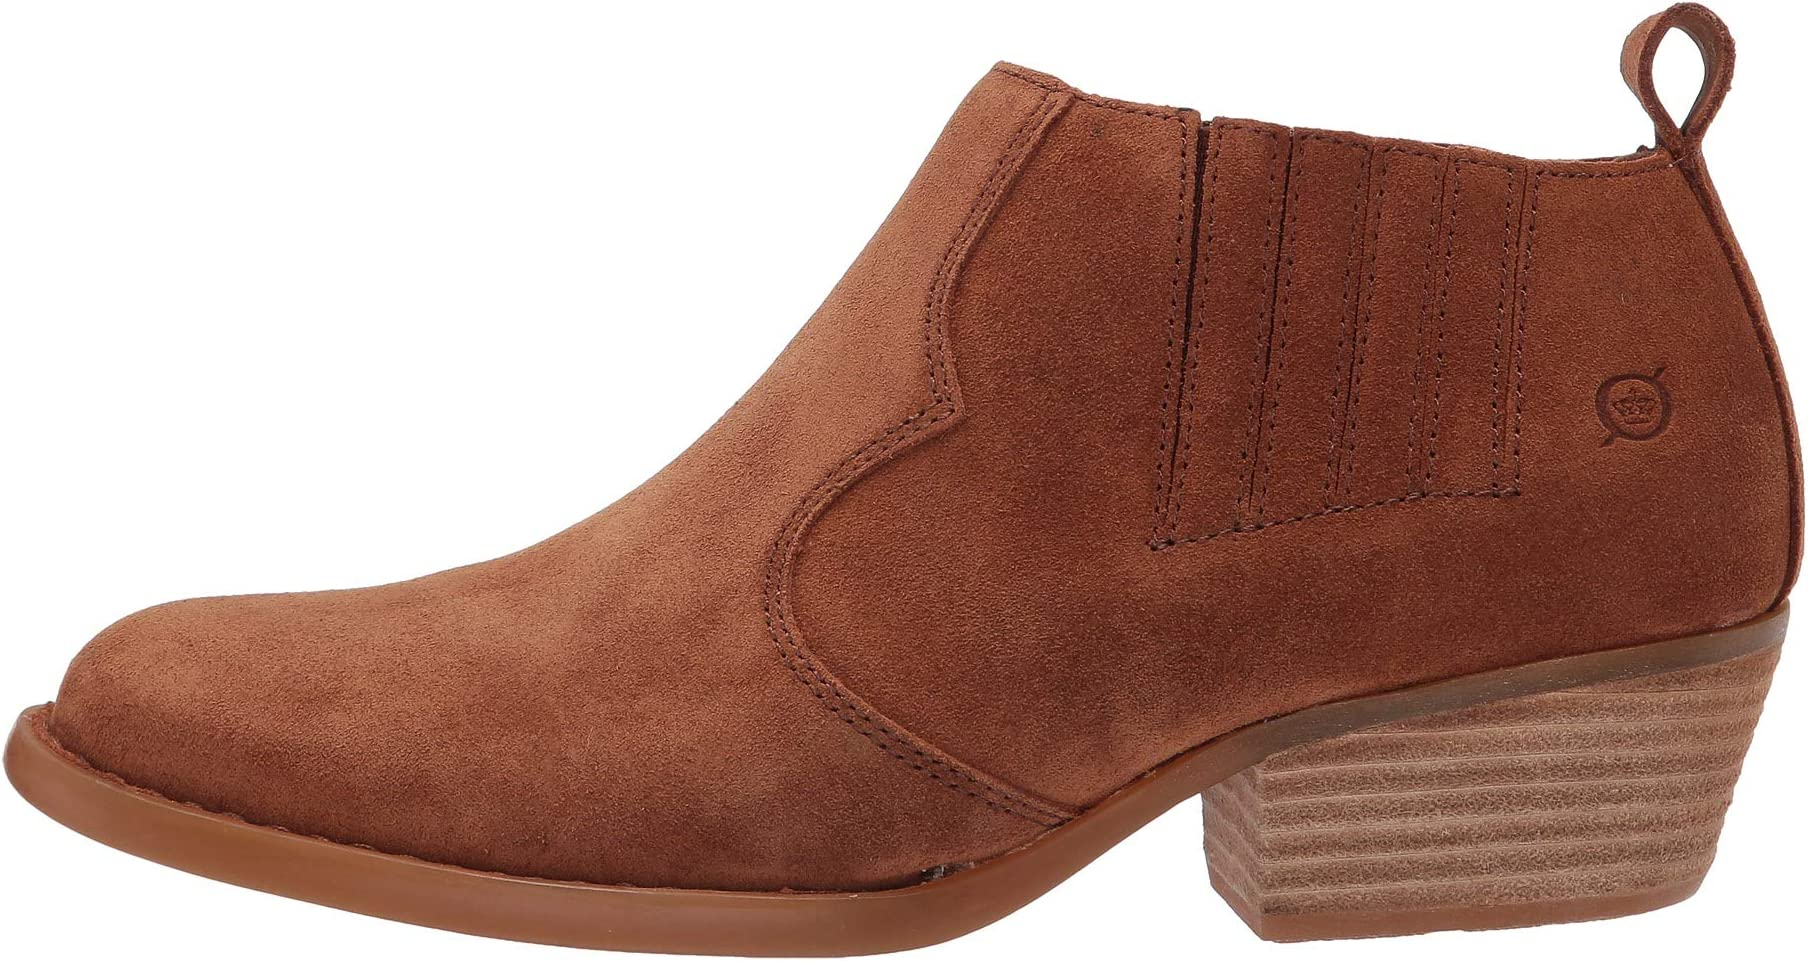 Born Wasatch | Women's shoes | 2020 Newest